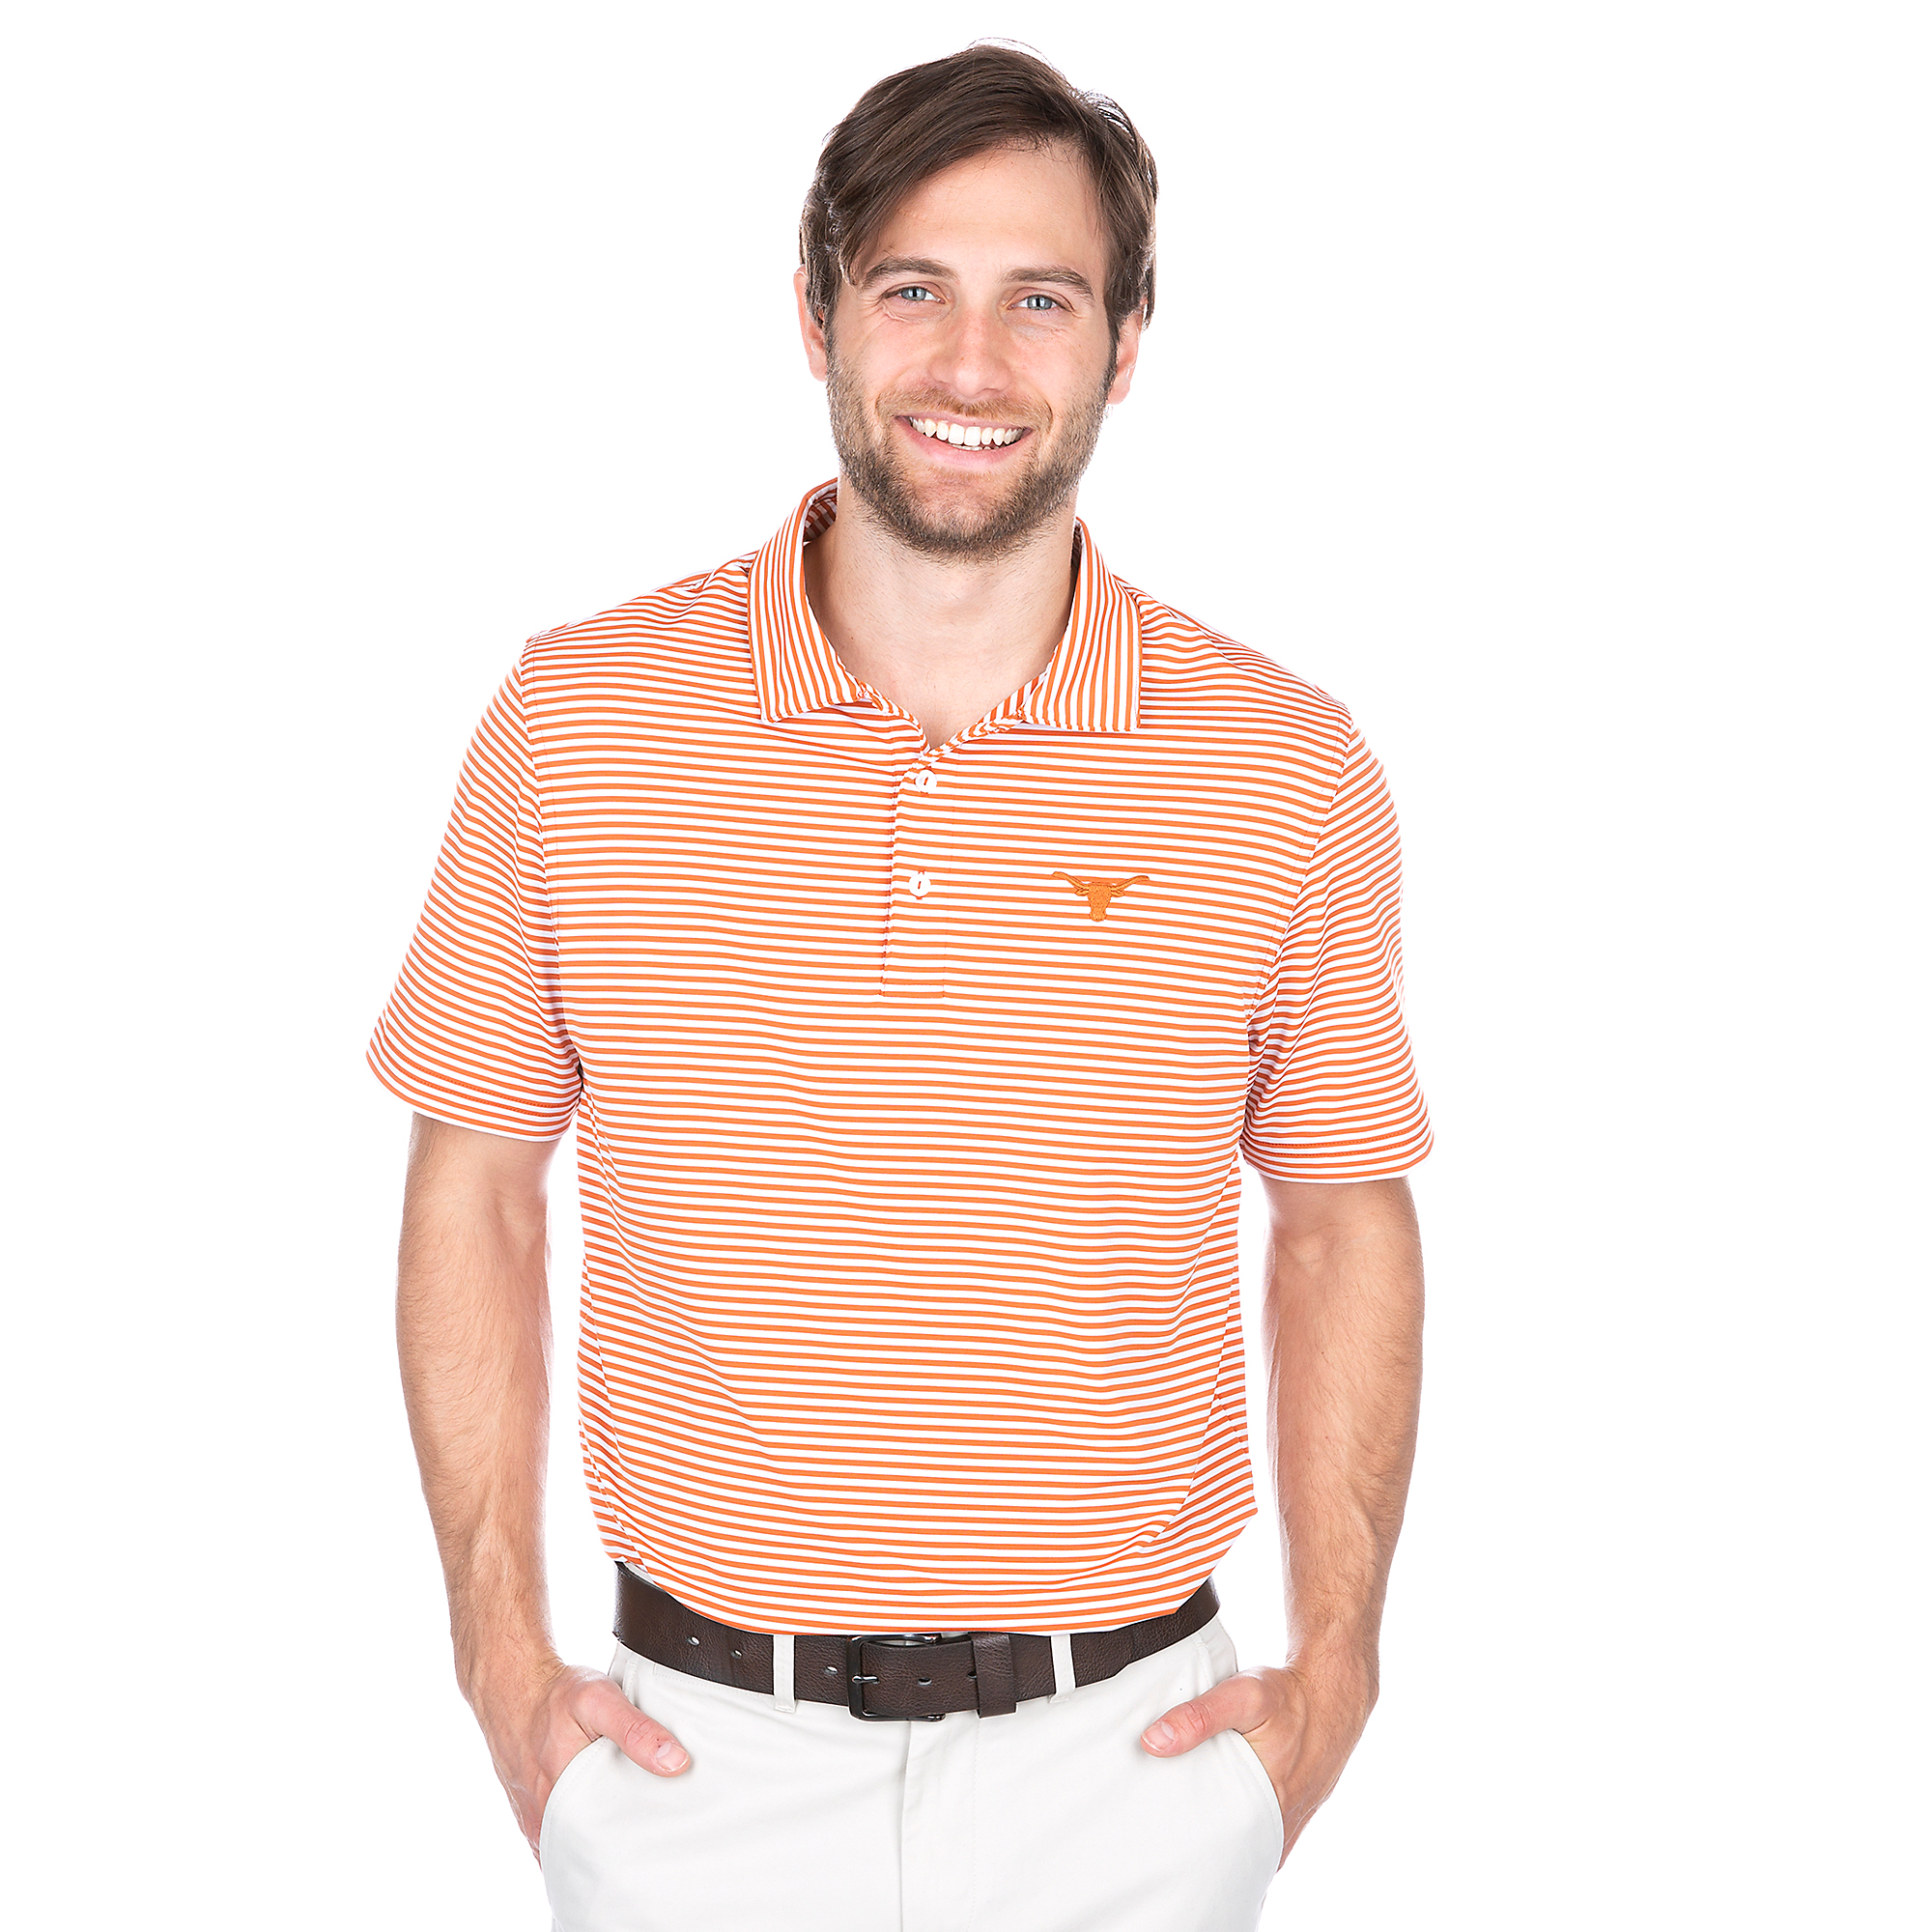 Texas Longhorns Vineyard Vines Winstead Stripe Polo